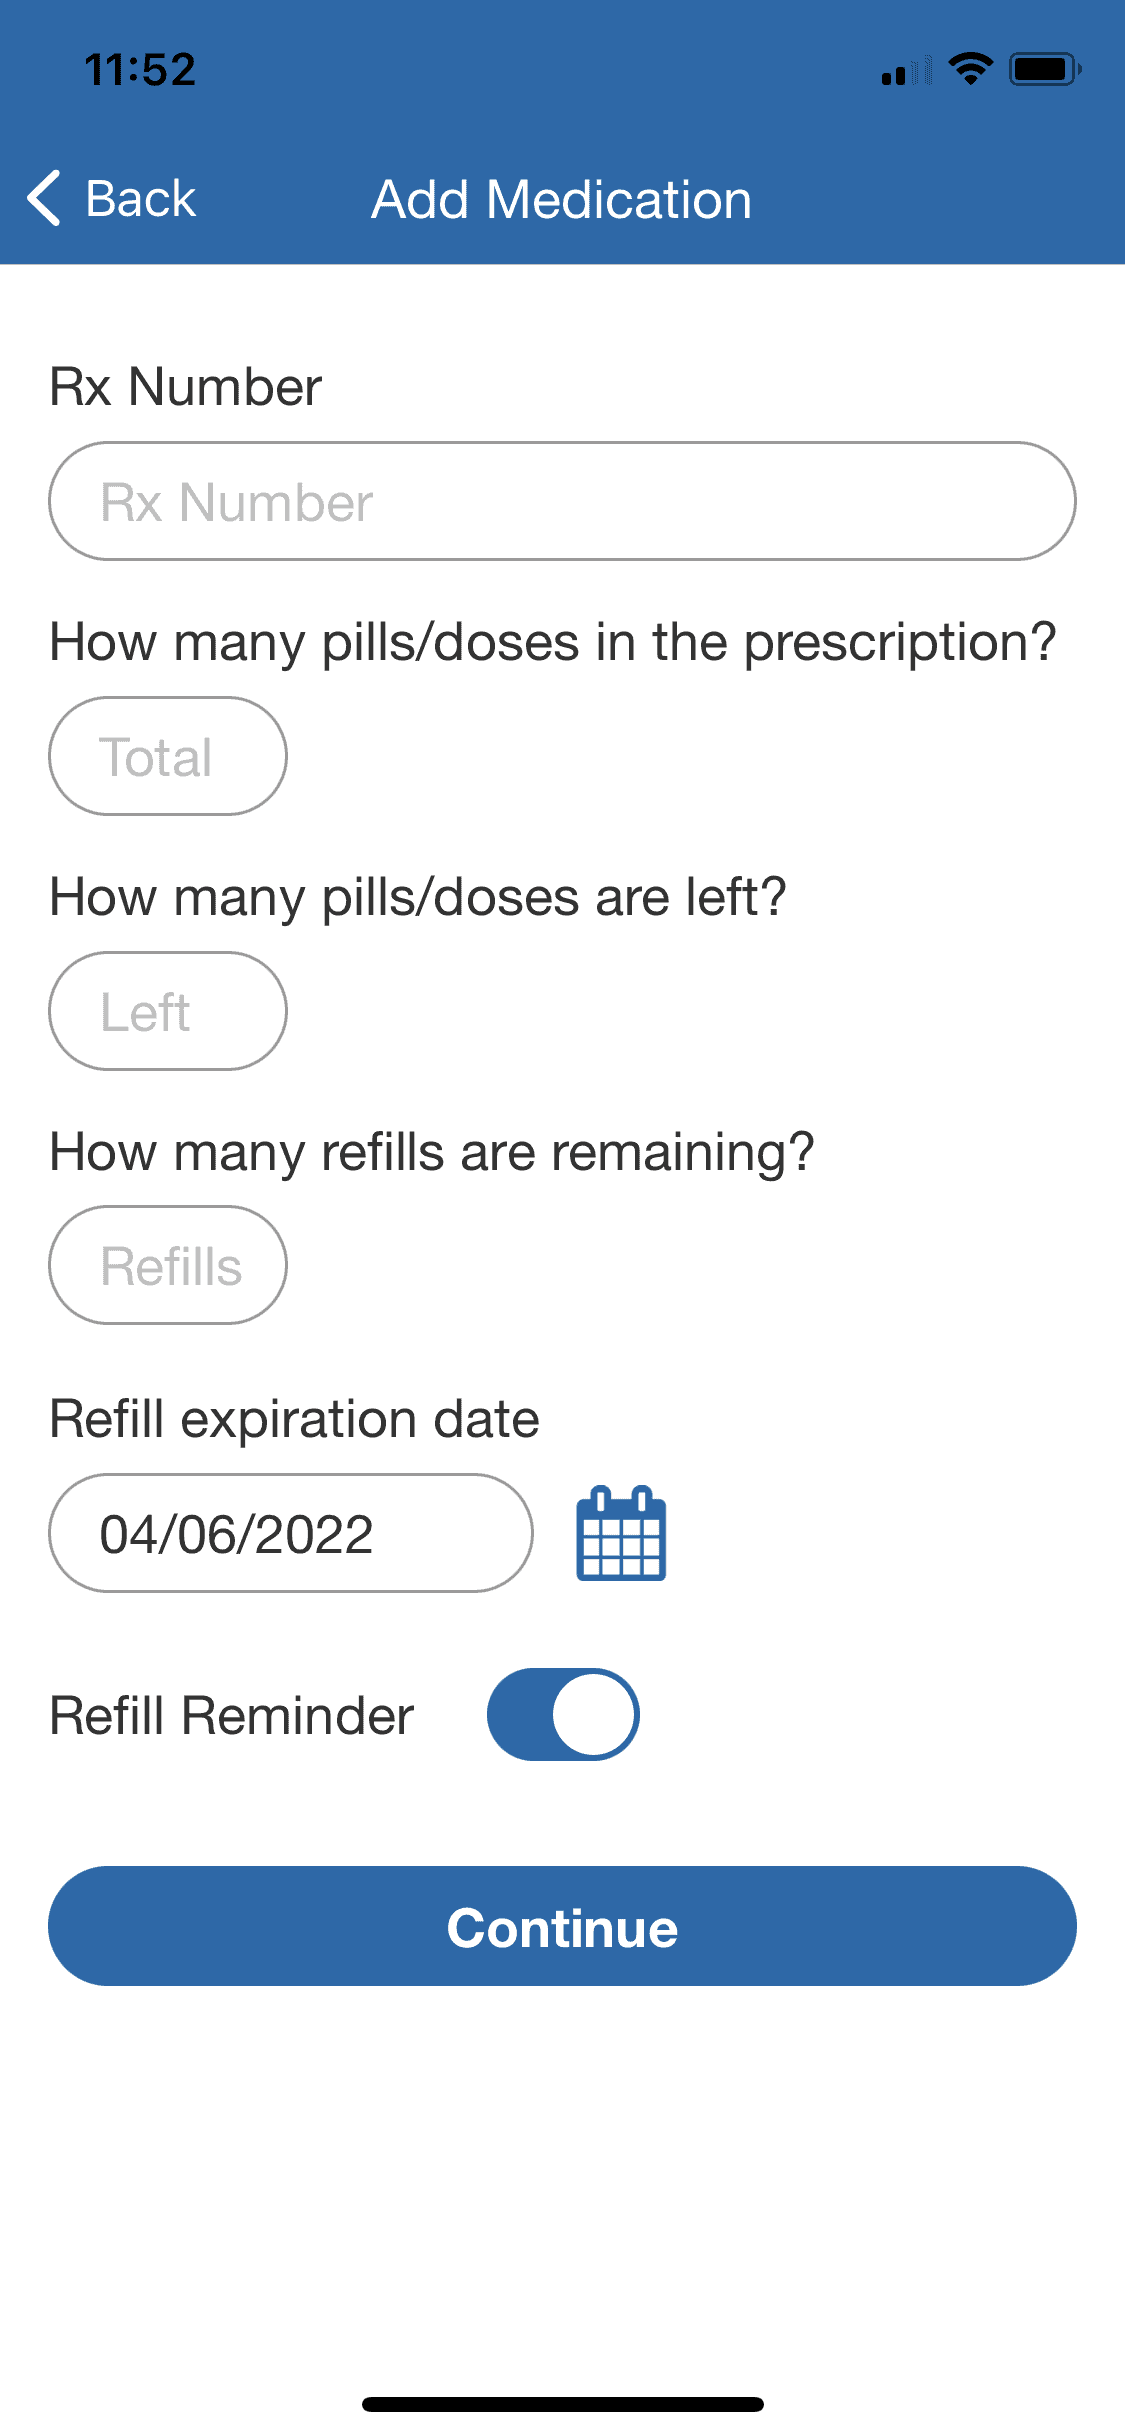 Inputting my medication information in the WellBe app